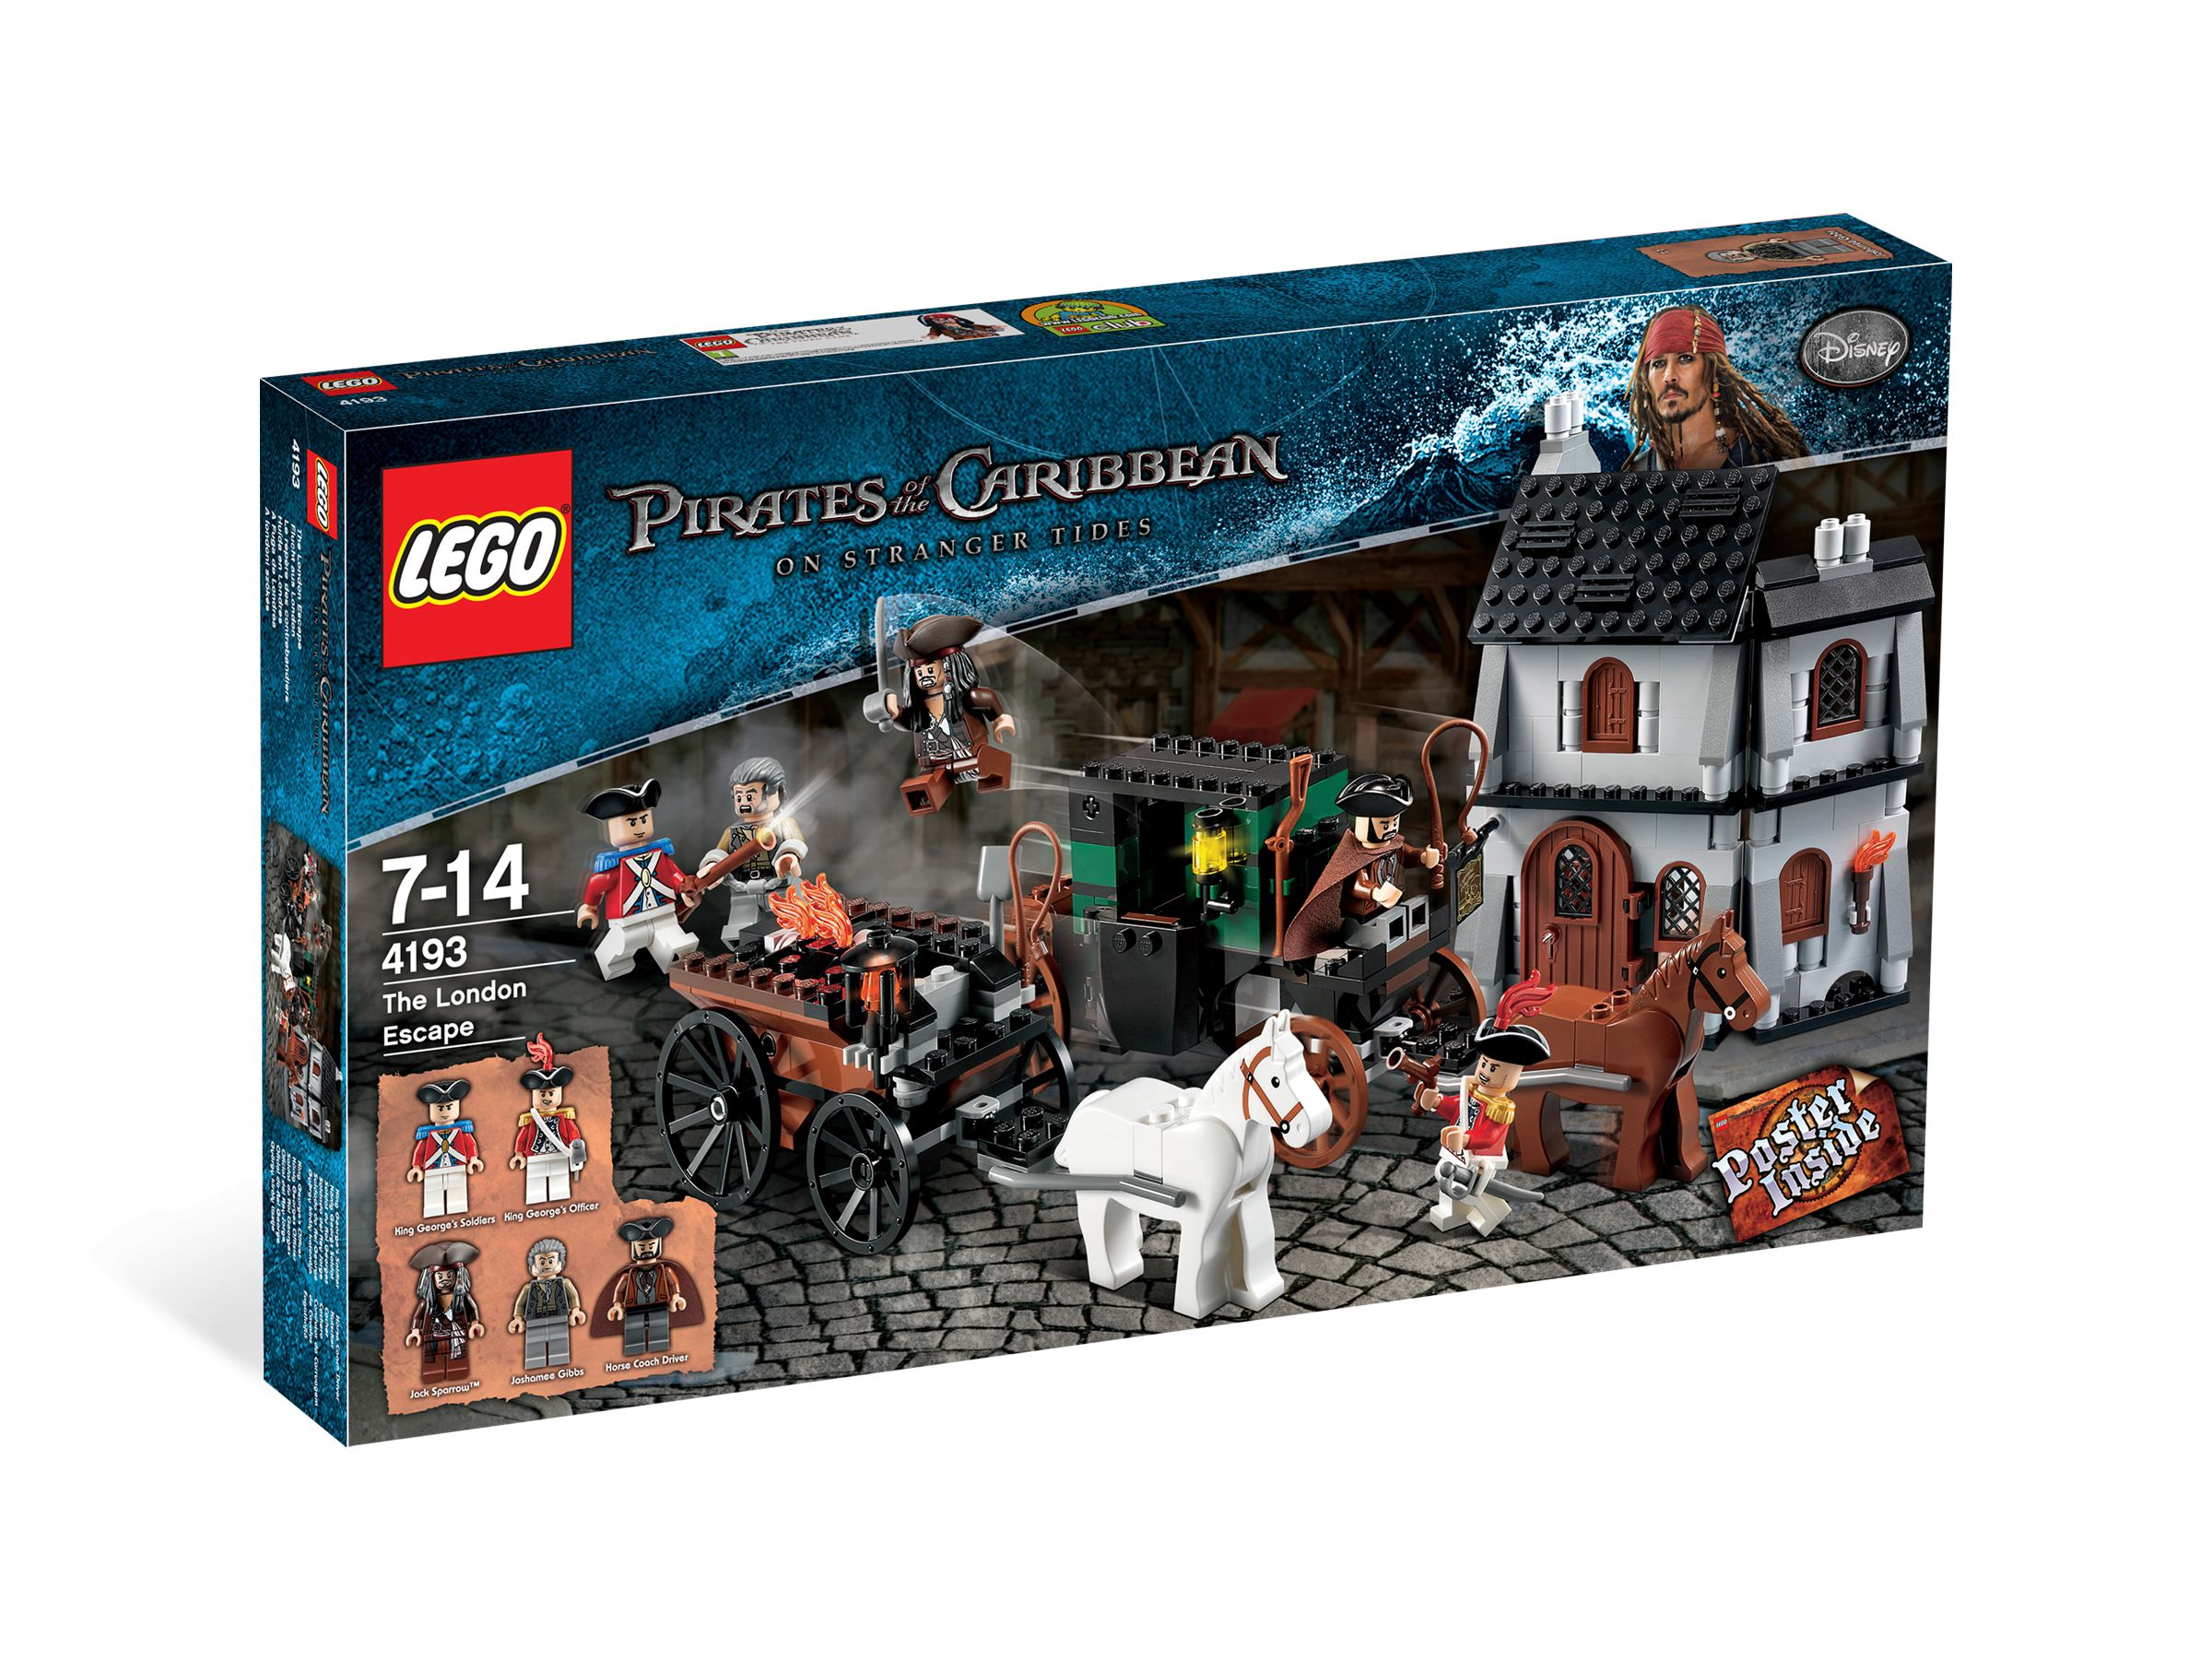 LEGO Pirates of the Caribbean 4193 Flucht aus London LEGO_4193_alt1.jpg